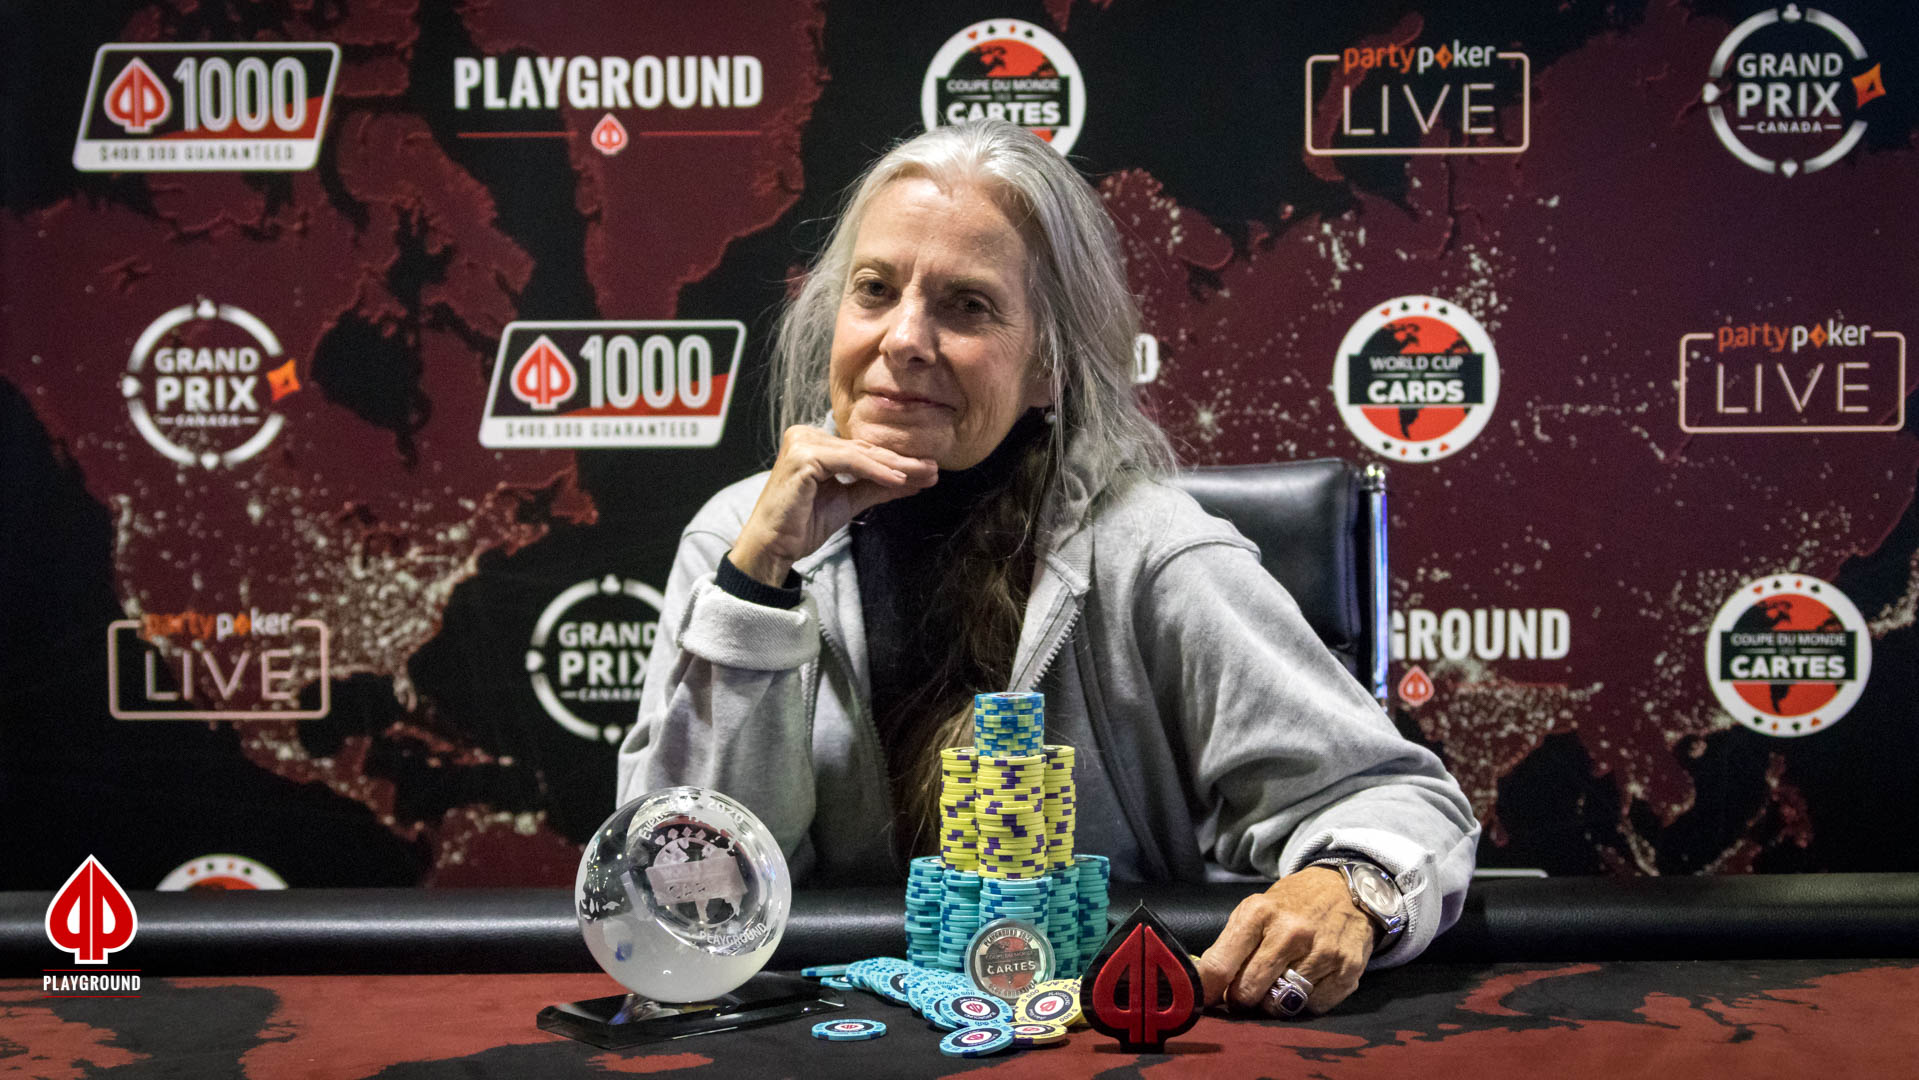 8-Max Bounty Re-entry Champion: Janet Slaughter